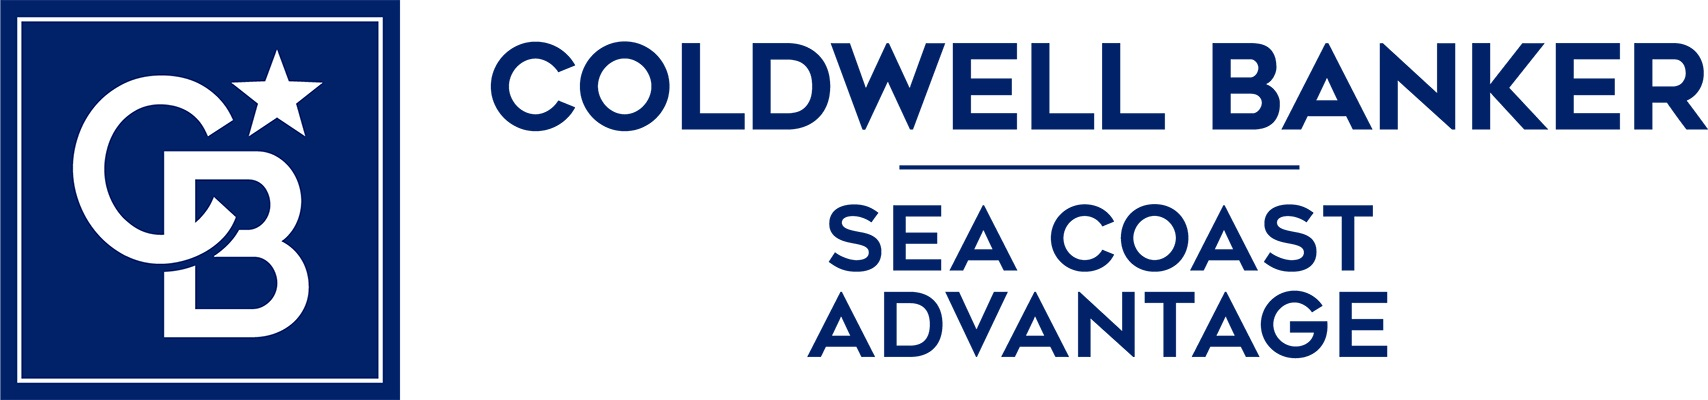 Briana Chesher - Coldwell Banker Sea Coast Advantage Realty Logo